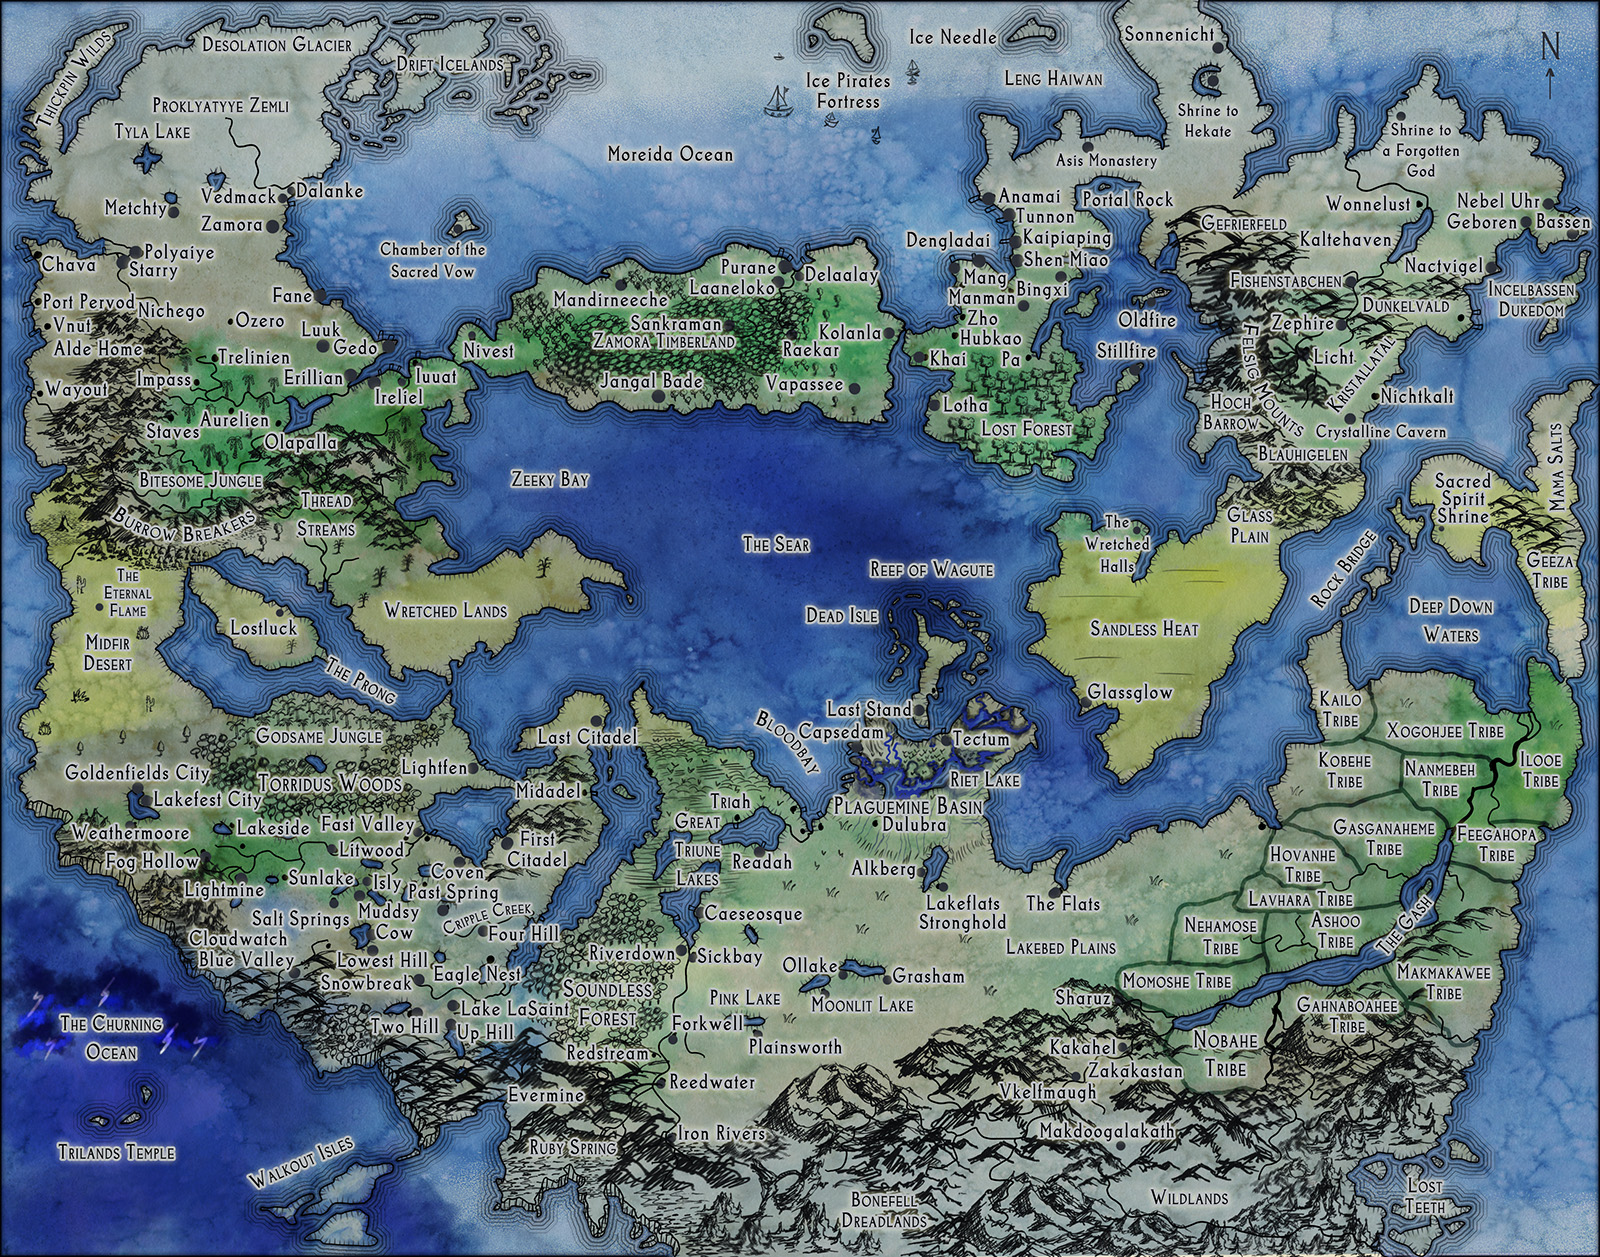 Stormtomes Large Fantasy World Map custom worldbuilding d&d dungeons and dragons pathfinder 5e 4e 3.5e systems agnostic world building cartographer consulting consultant make up worlds help dungeon masters professional gm pro game master run rpg mars style map for stormtomes dark blue realistic realm kingdom for explorers adventuring party make a custom fantasy map how do i hire someone to make me a custom fantasy world map how to get a fantasy cartographer get someone to make up fantasy names for me make up fantasy country names creative consultancy game building